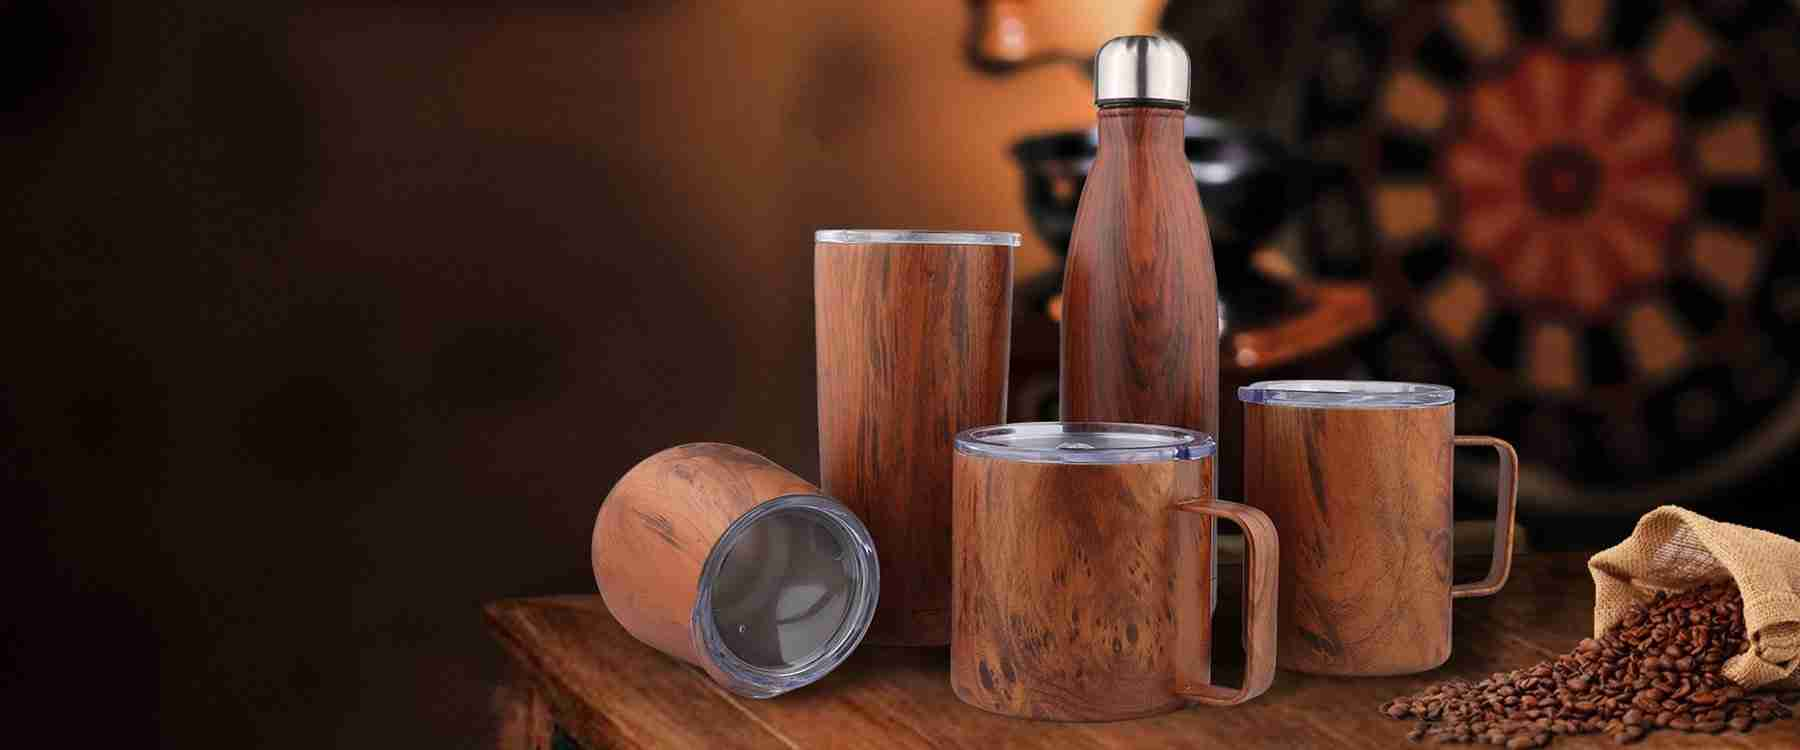 Why Should You Care About the Best Coffee Thermos?